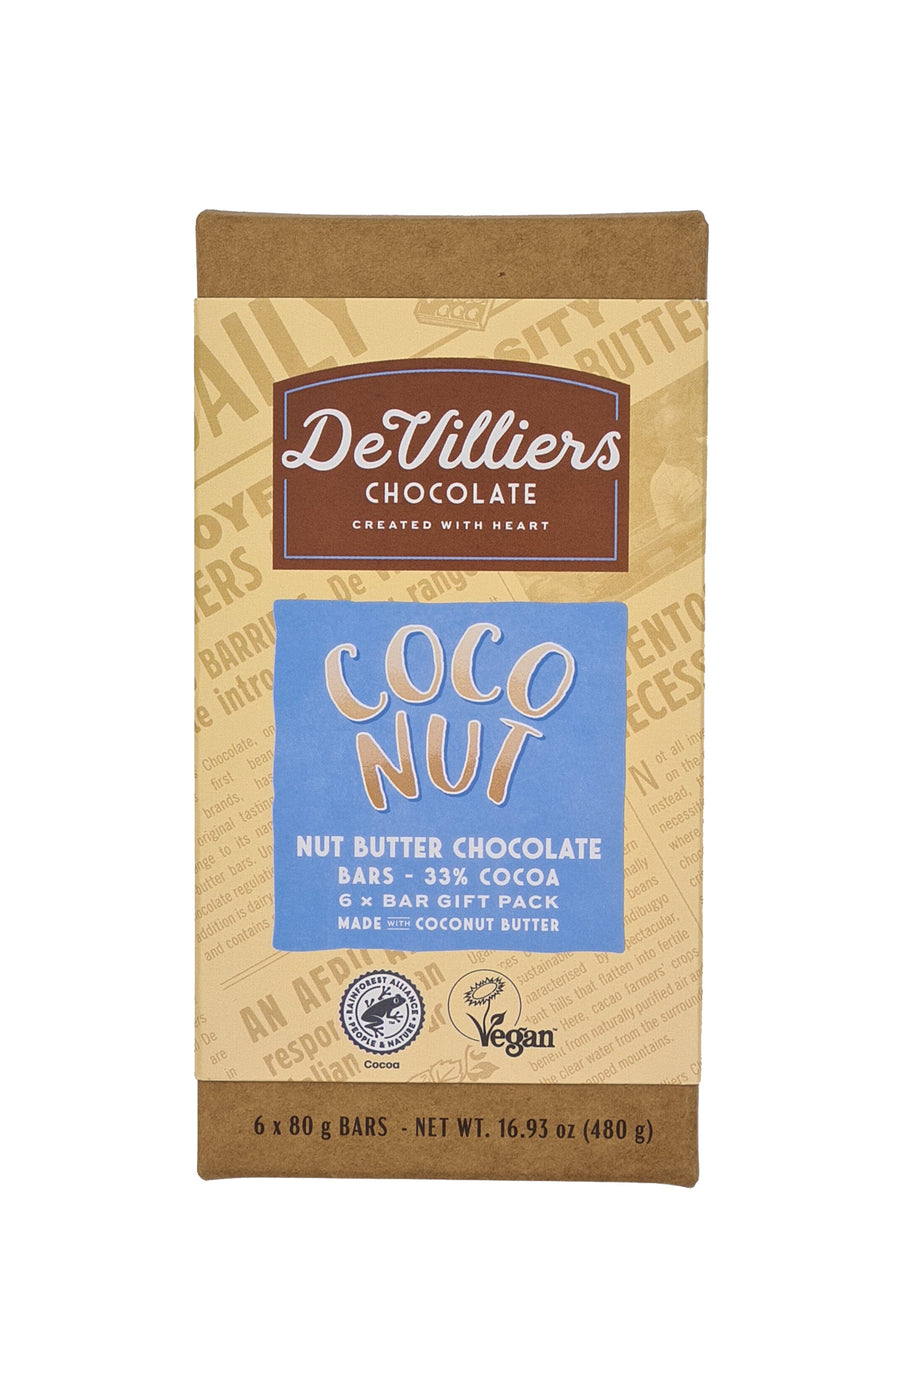 DAIRY-FREE MYLK COCONUT NUT BUTTER CHOCOLATE BAR - De Villiers Chocolate